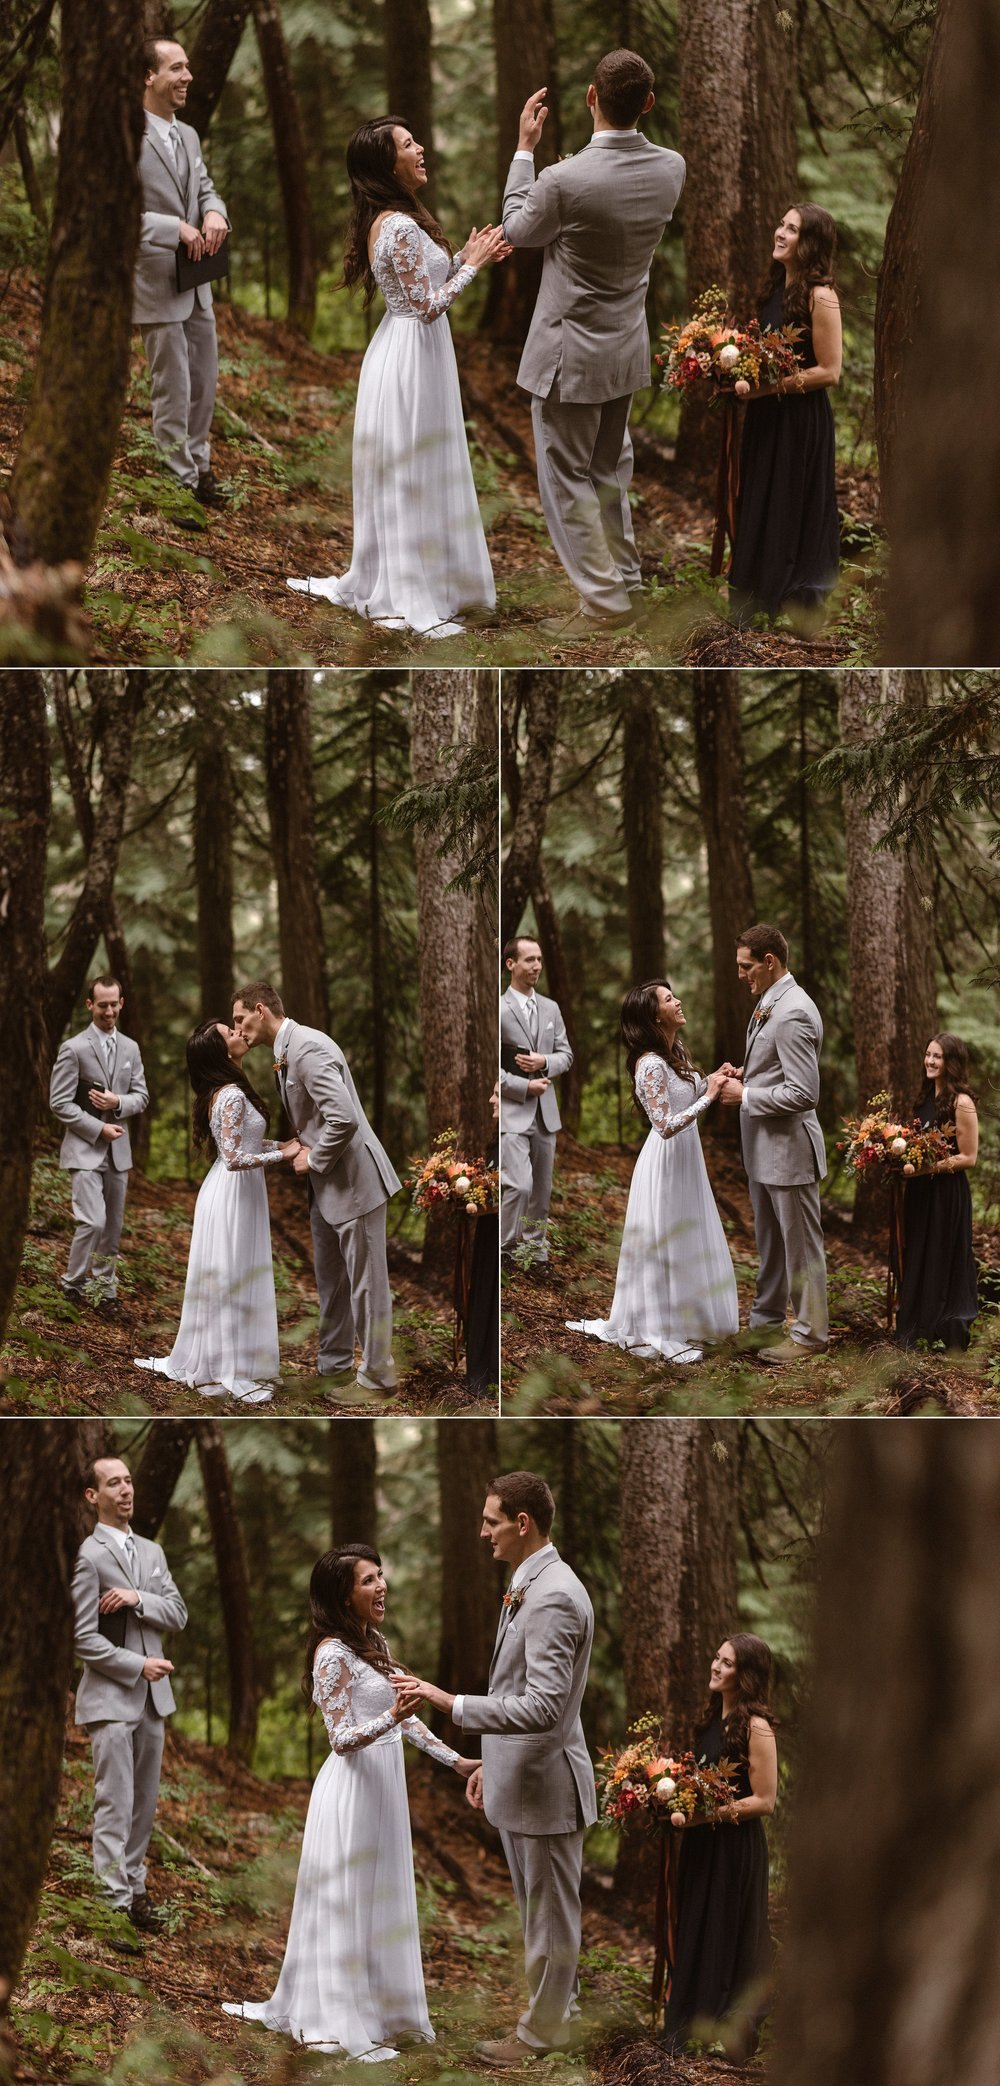 With no one around but their closest friends and traveling elopement photographer Maddie Mae, Resa and Grant let out hoots and hollers of excitement to celebrate their intimate marriage among the trees in Mount Rainier National Park in Washington state.